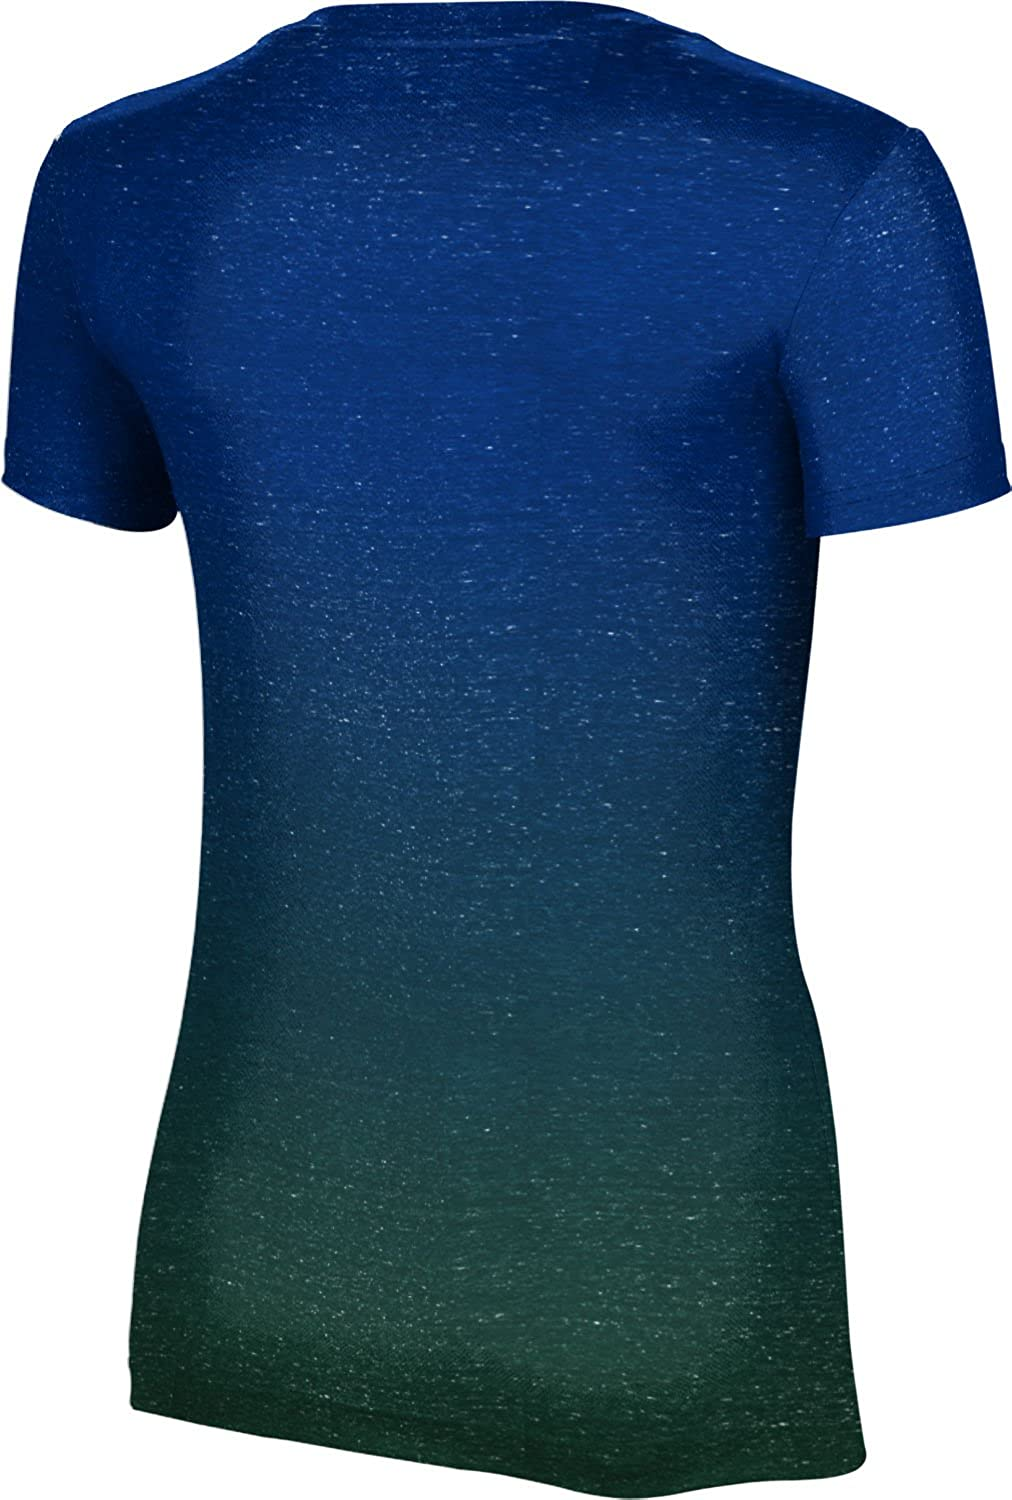 ProSphere Georgia College /& State University Girls Performance T-Shirt Ombre